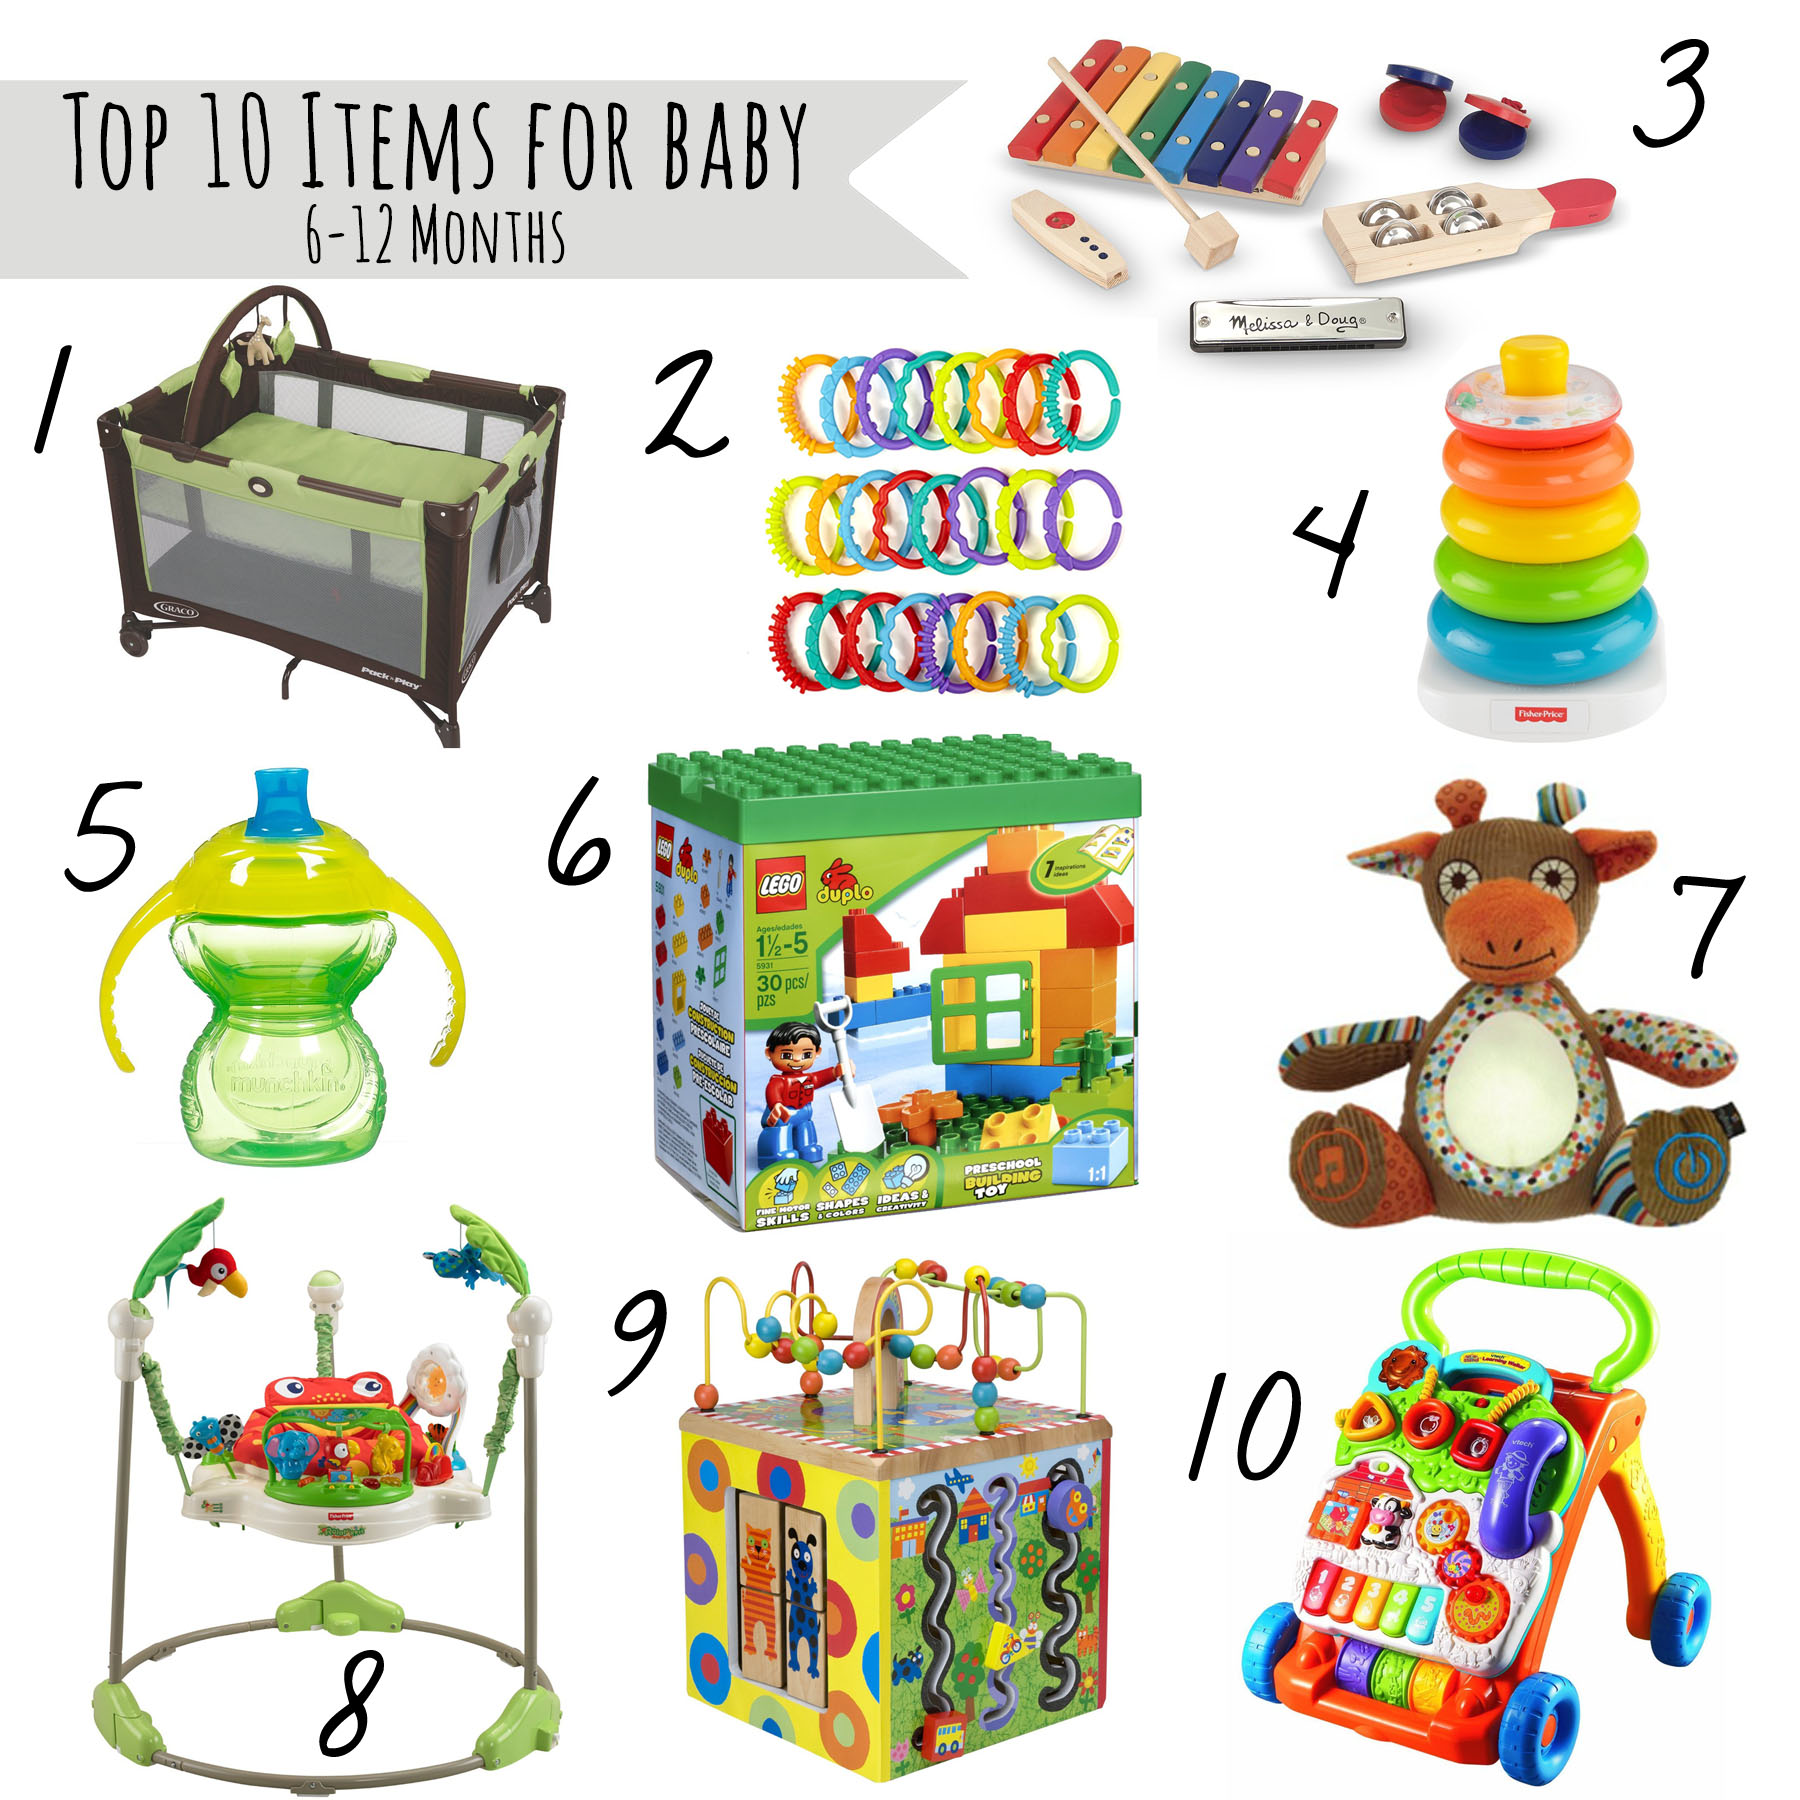 Best Baby Toys For 8 Months Old : Top must haves for babies month old our